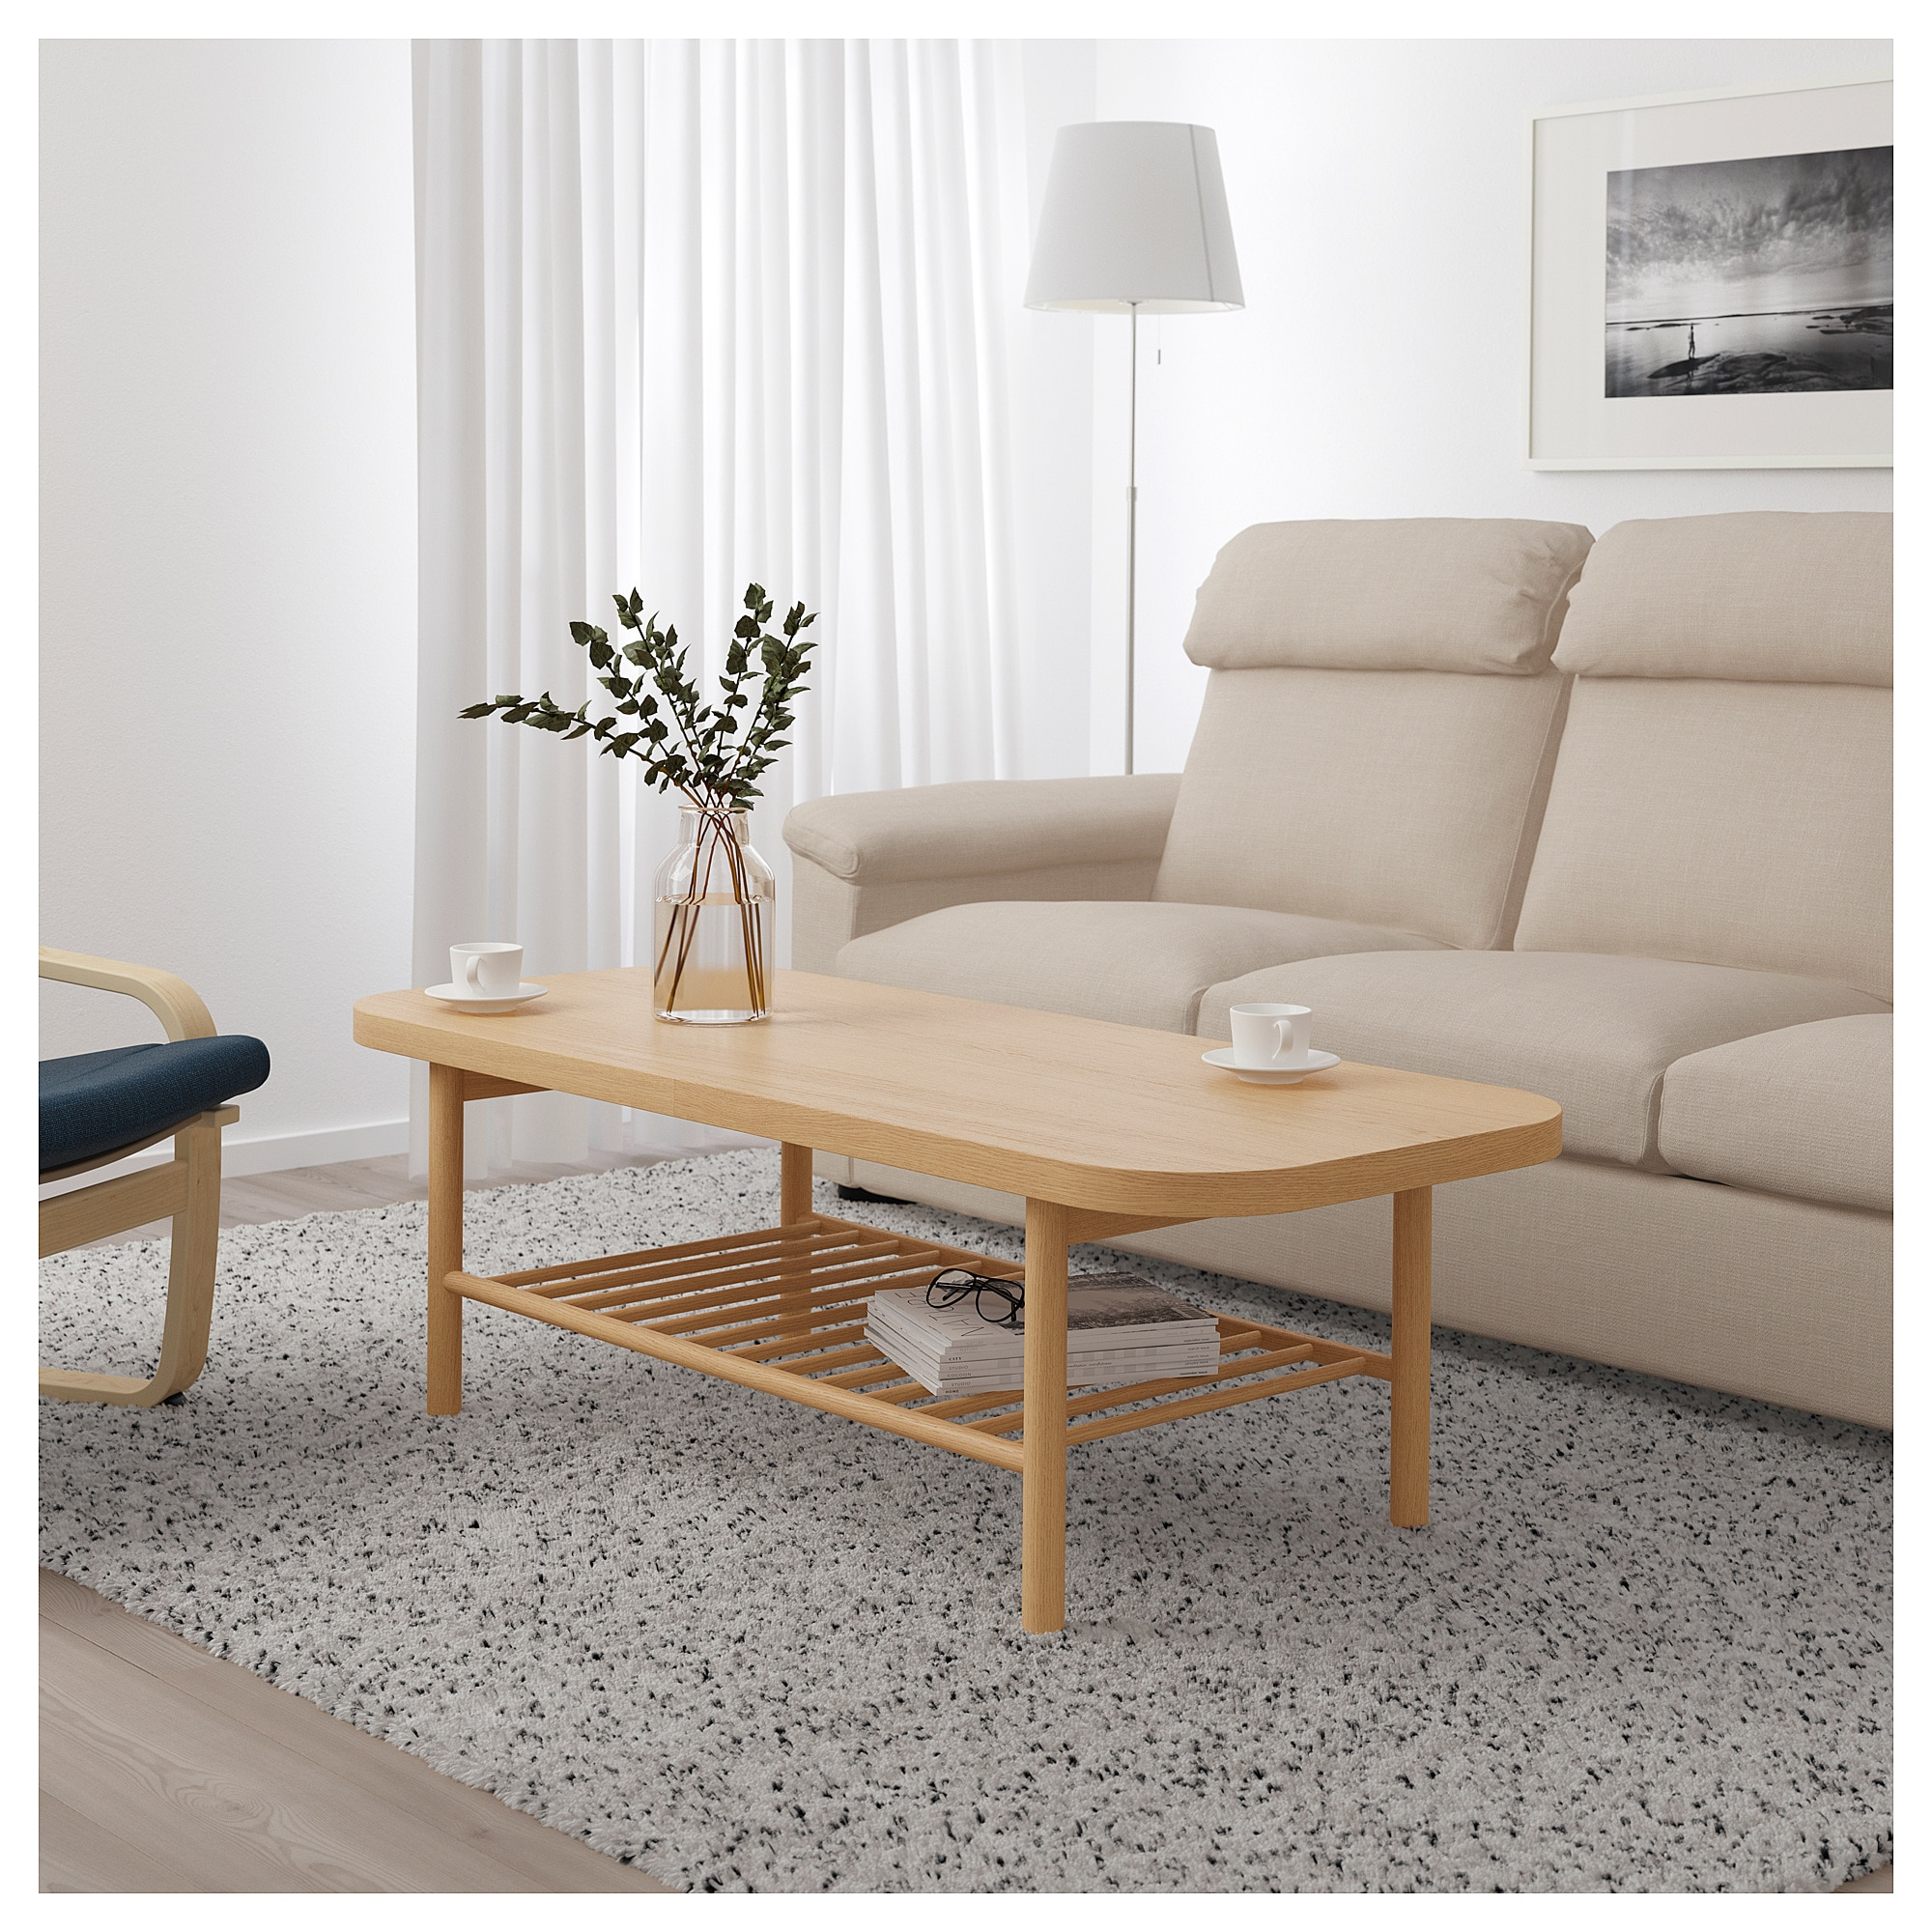 LISTERBY white stained oak, Coffee table, 140x60 cm - IKEA ...